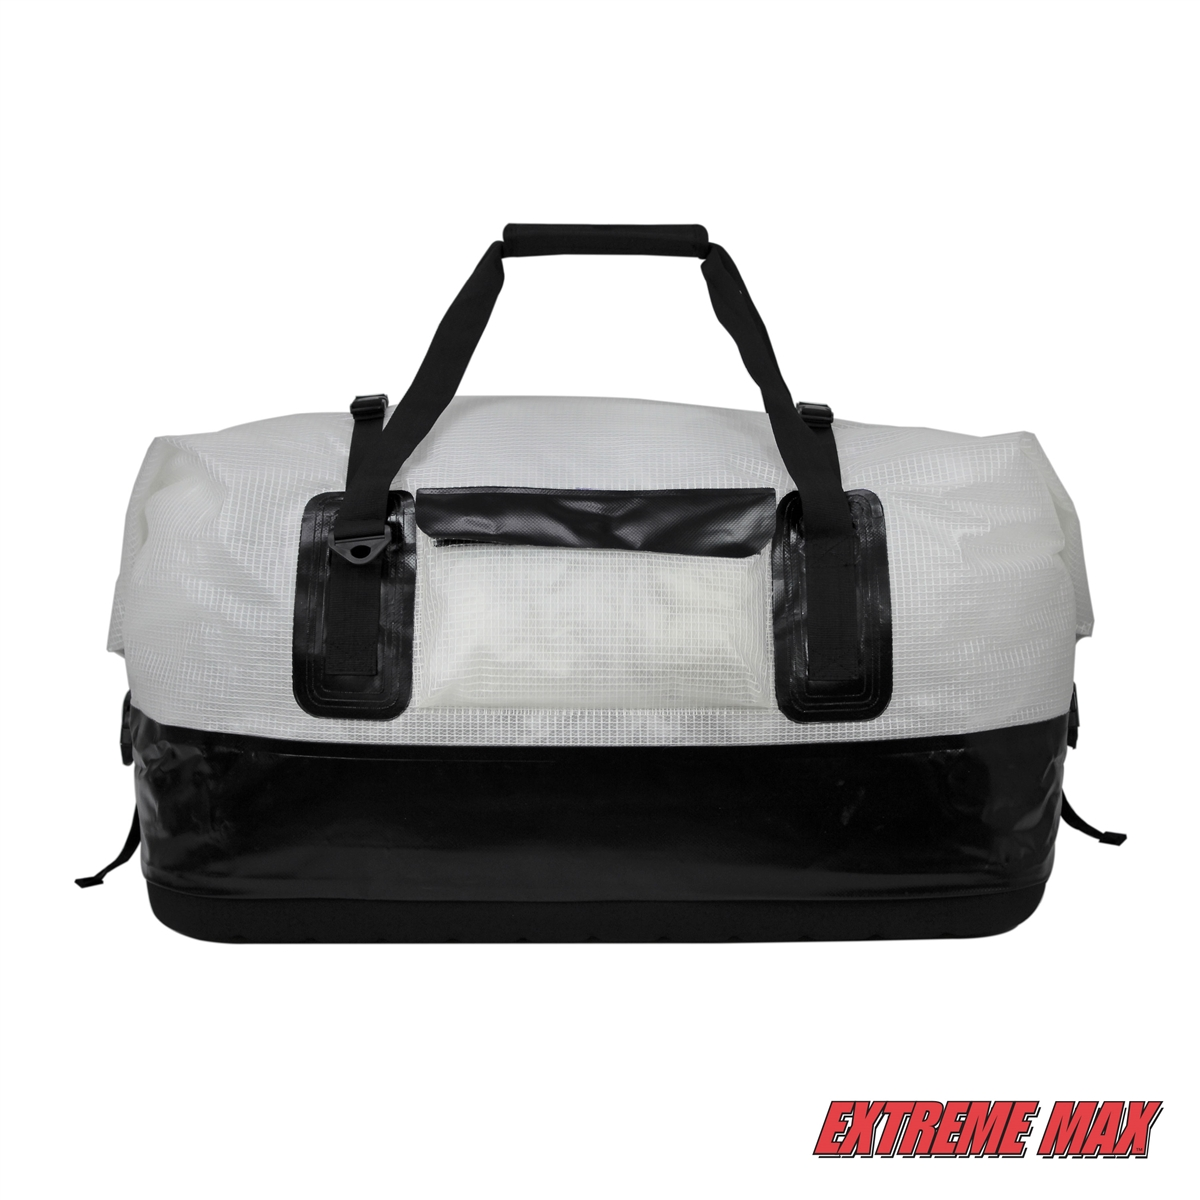 1600f7ef60ed Extreme Max 3006.7351 Dry Tech Waterproof Roll-Top Duffel Bag ...